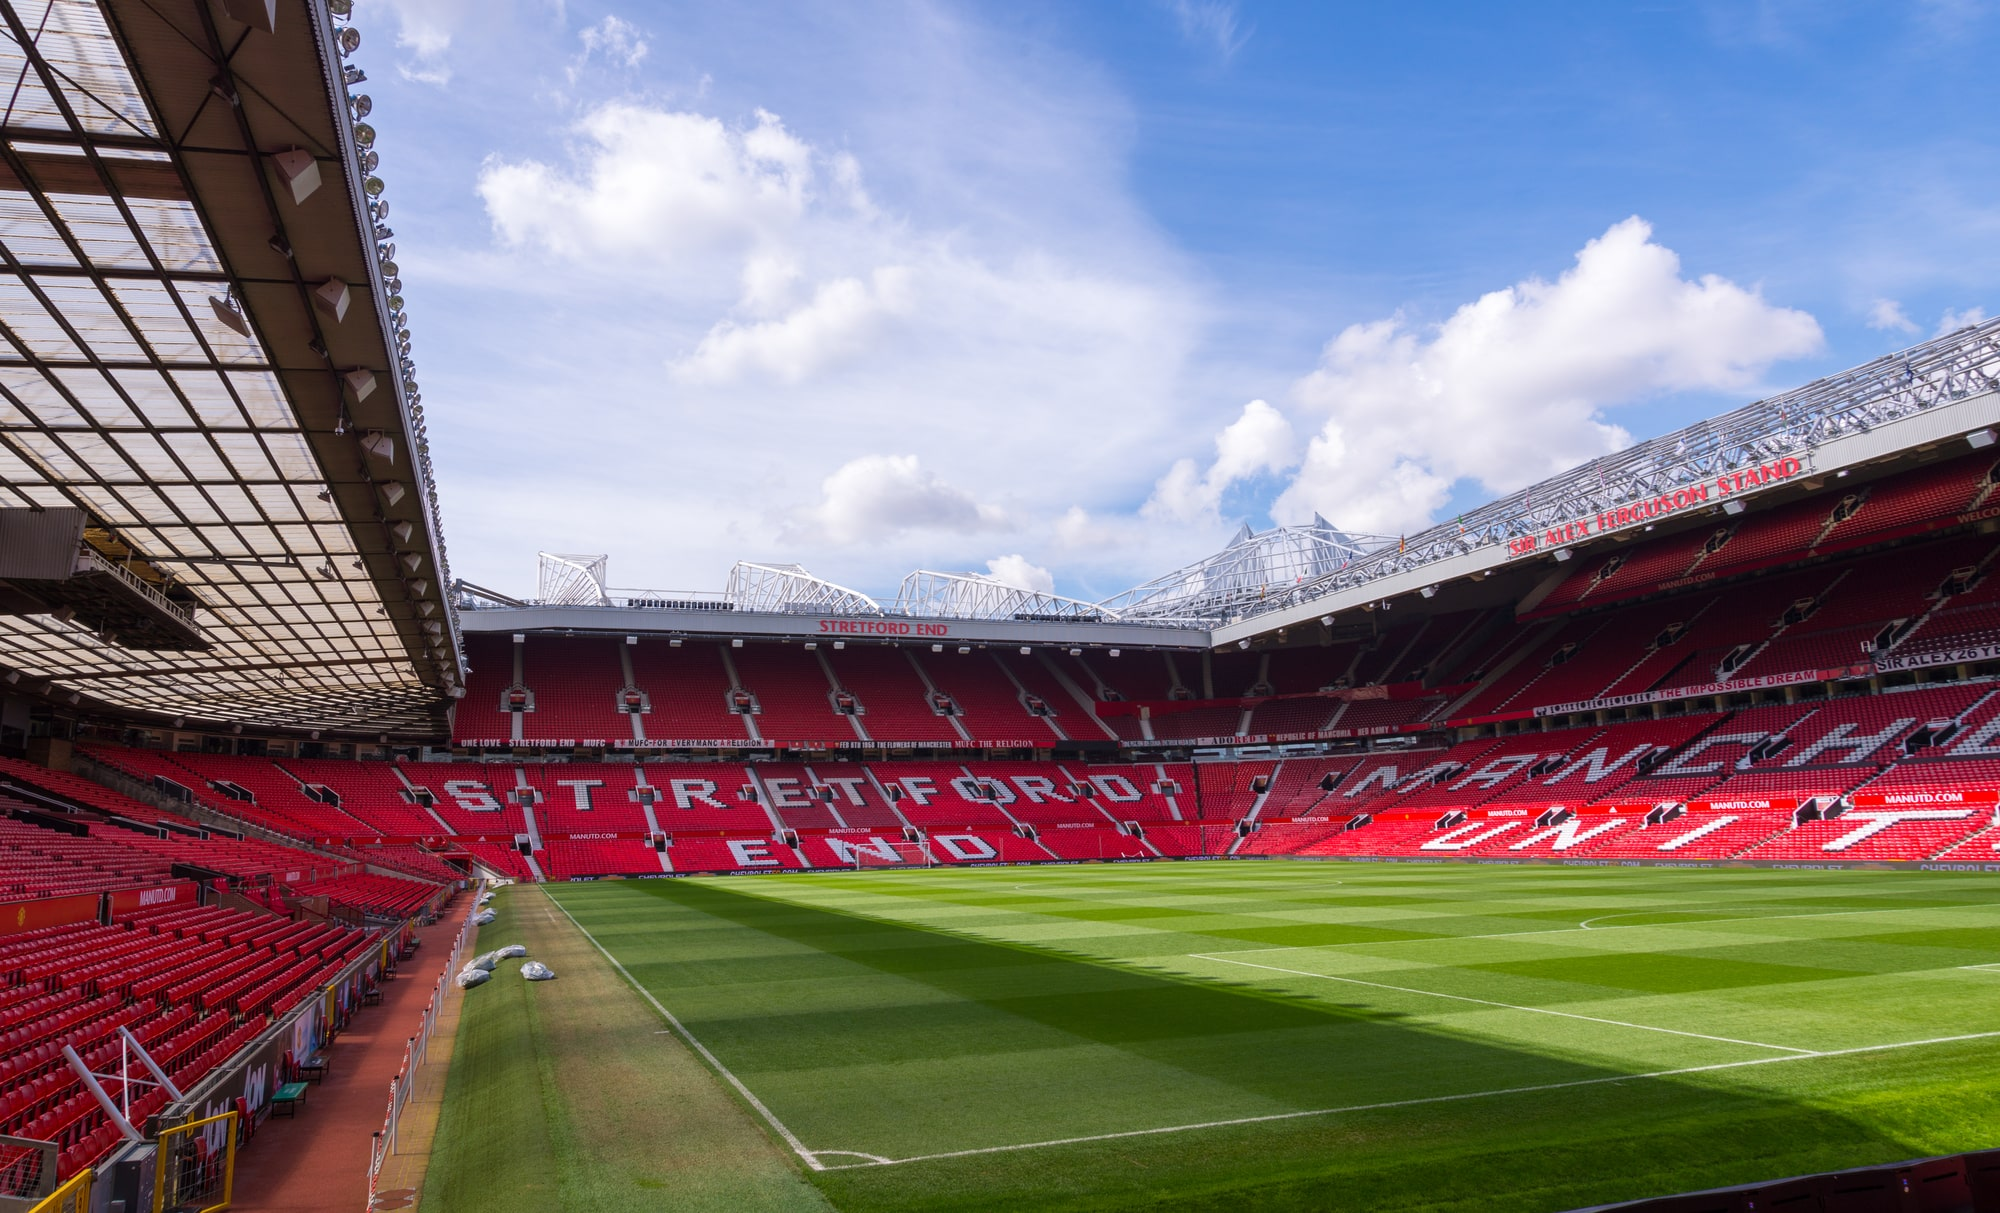 Manchester United v Liverpool Postponed as fans invade Old Trafford pitch